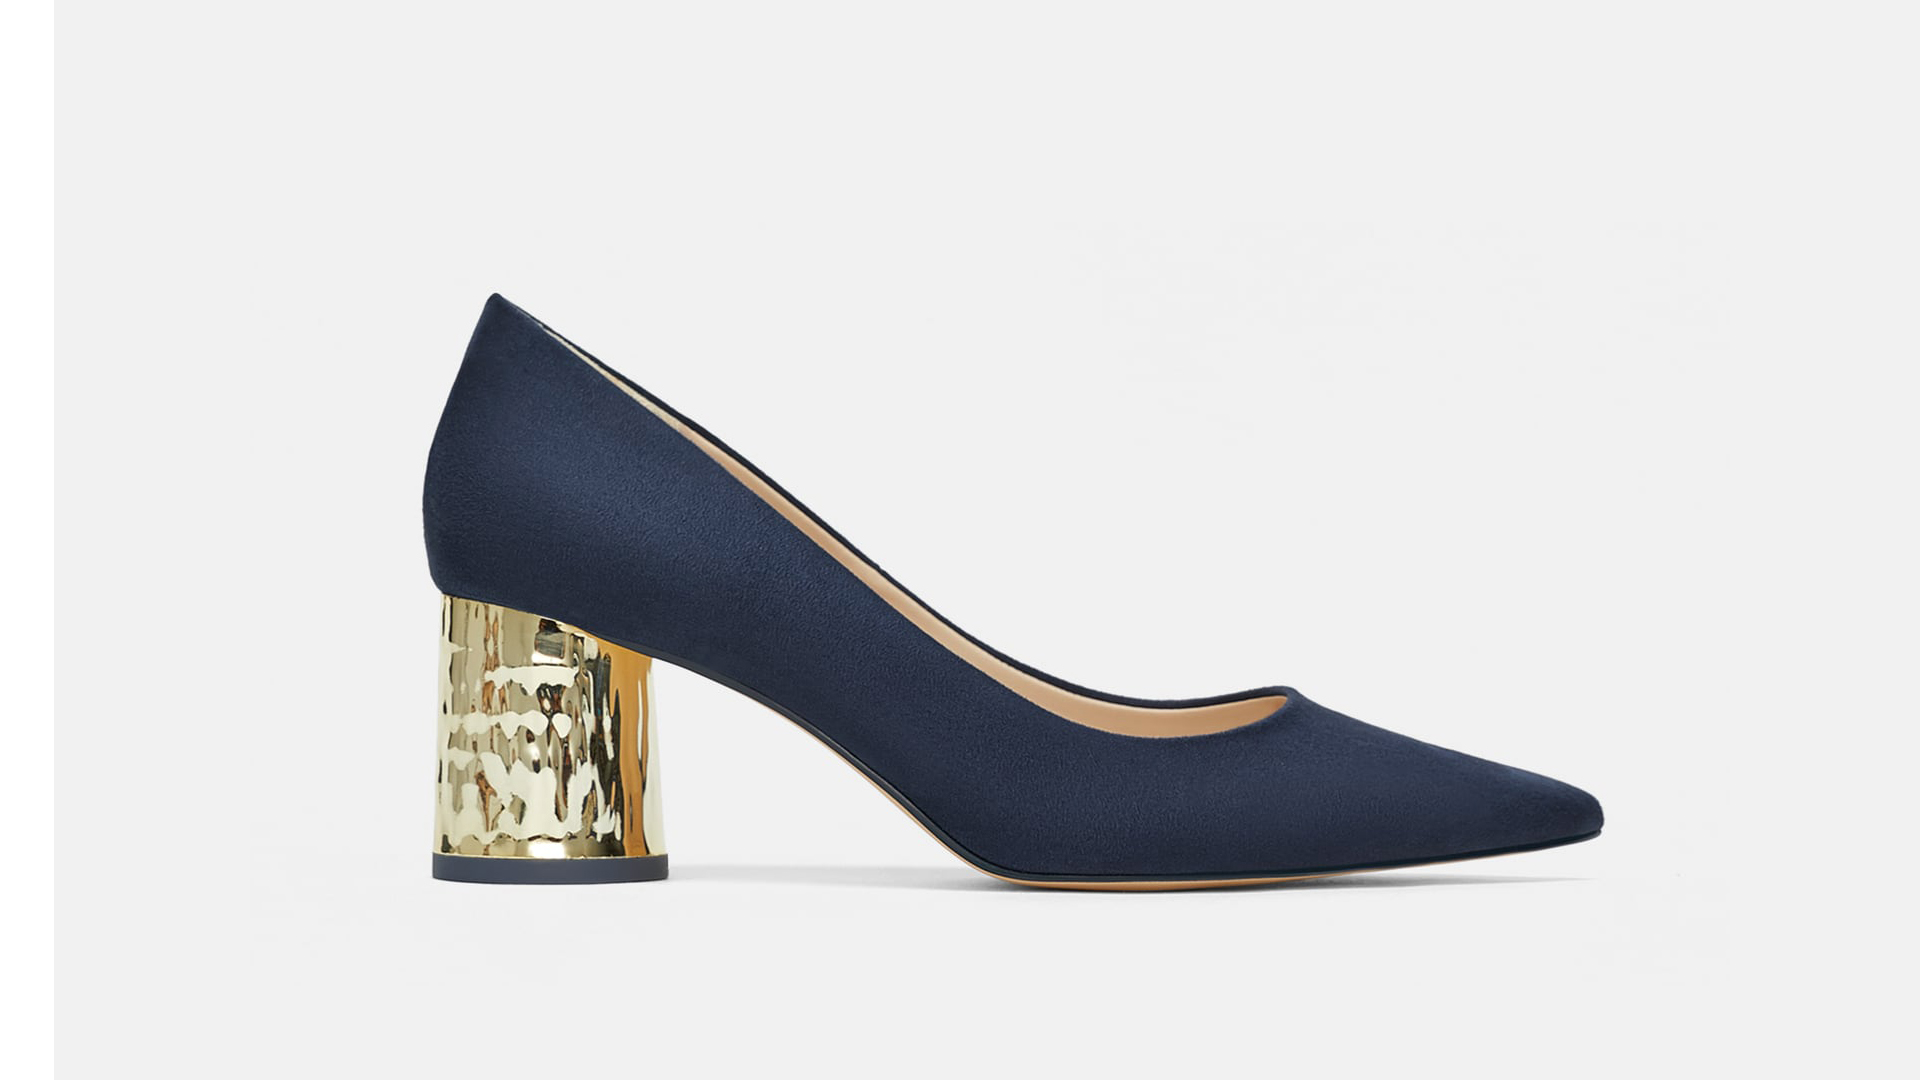 Navy and Gold Pumps